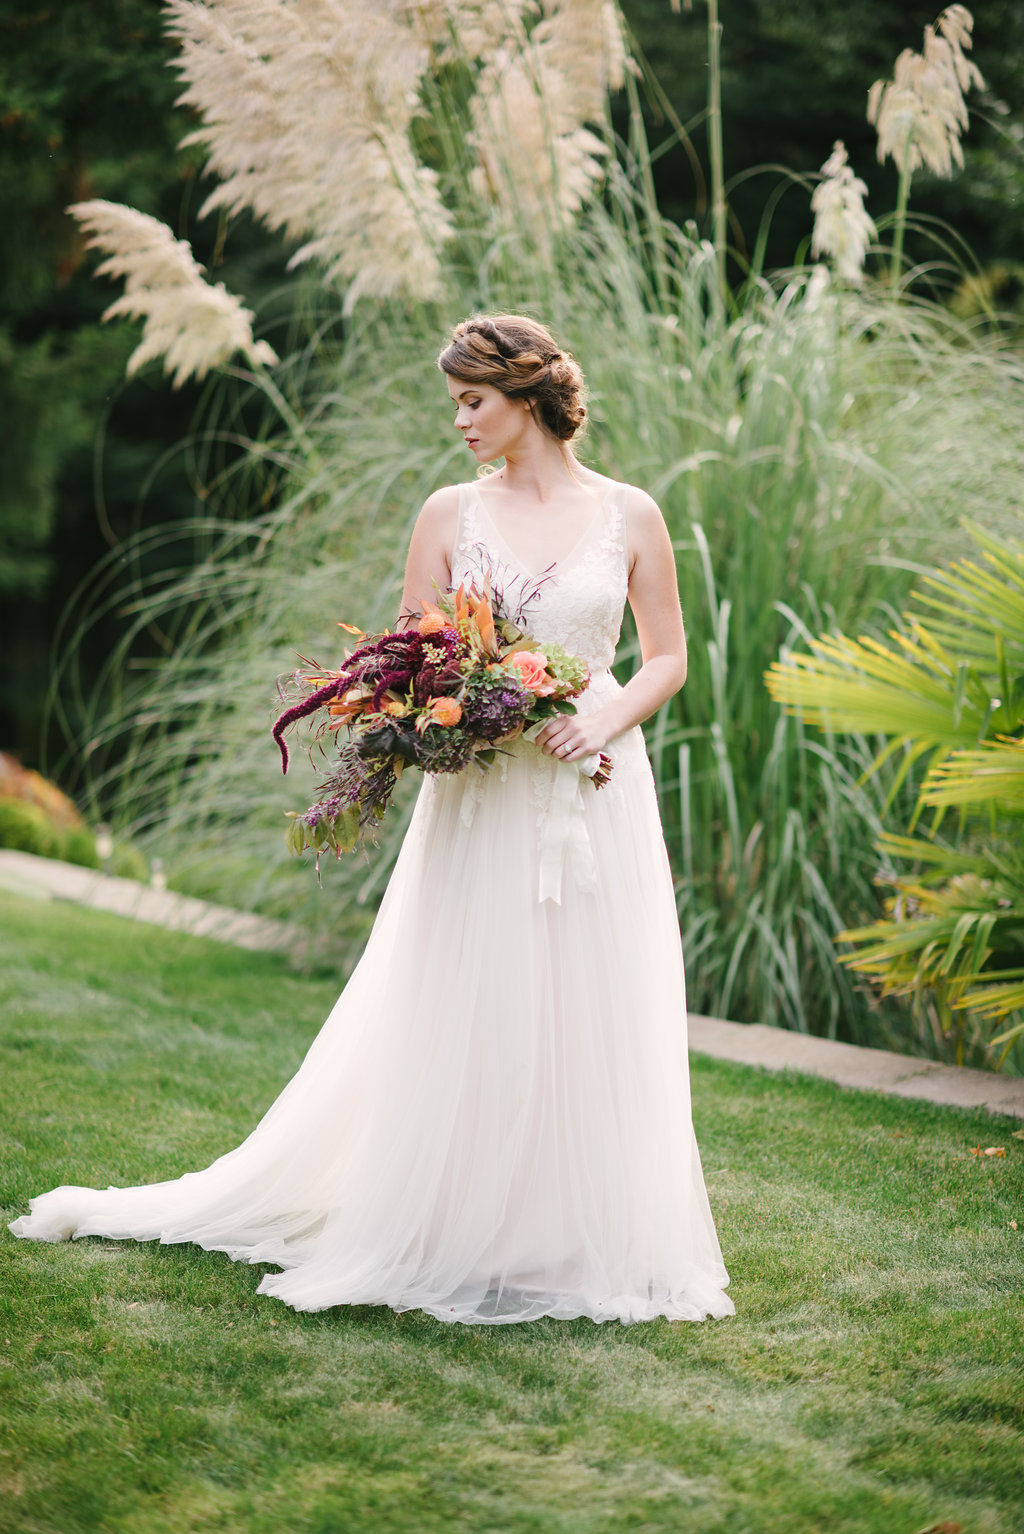 BHLDN Reagan Wedding Dress - STYLED WEDDING SHOOT | A Romantic Vintage Fall Wedding